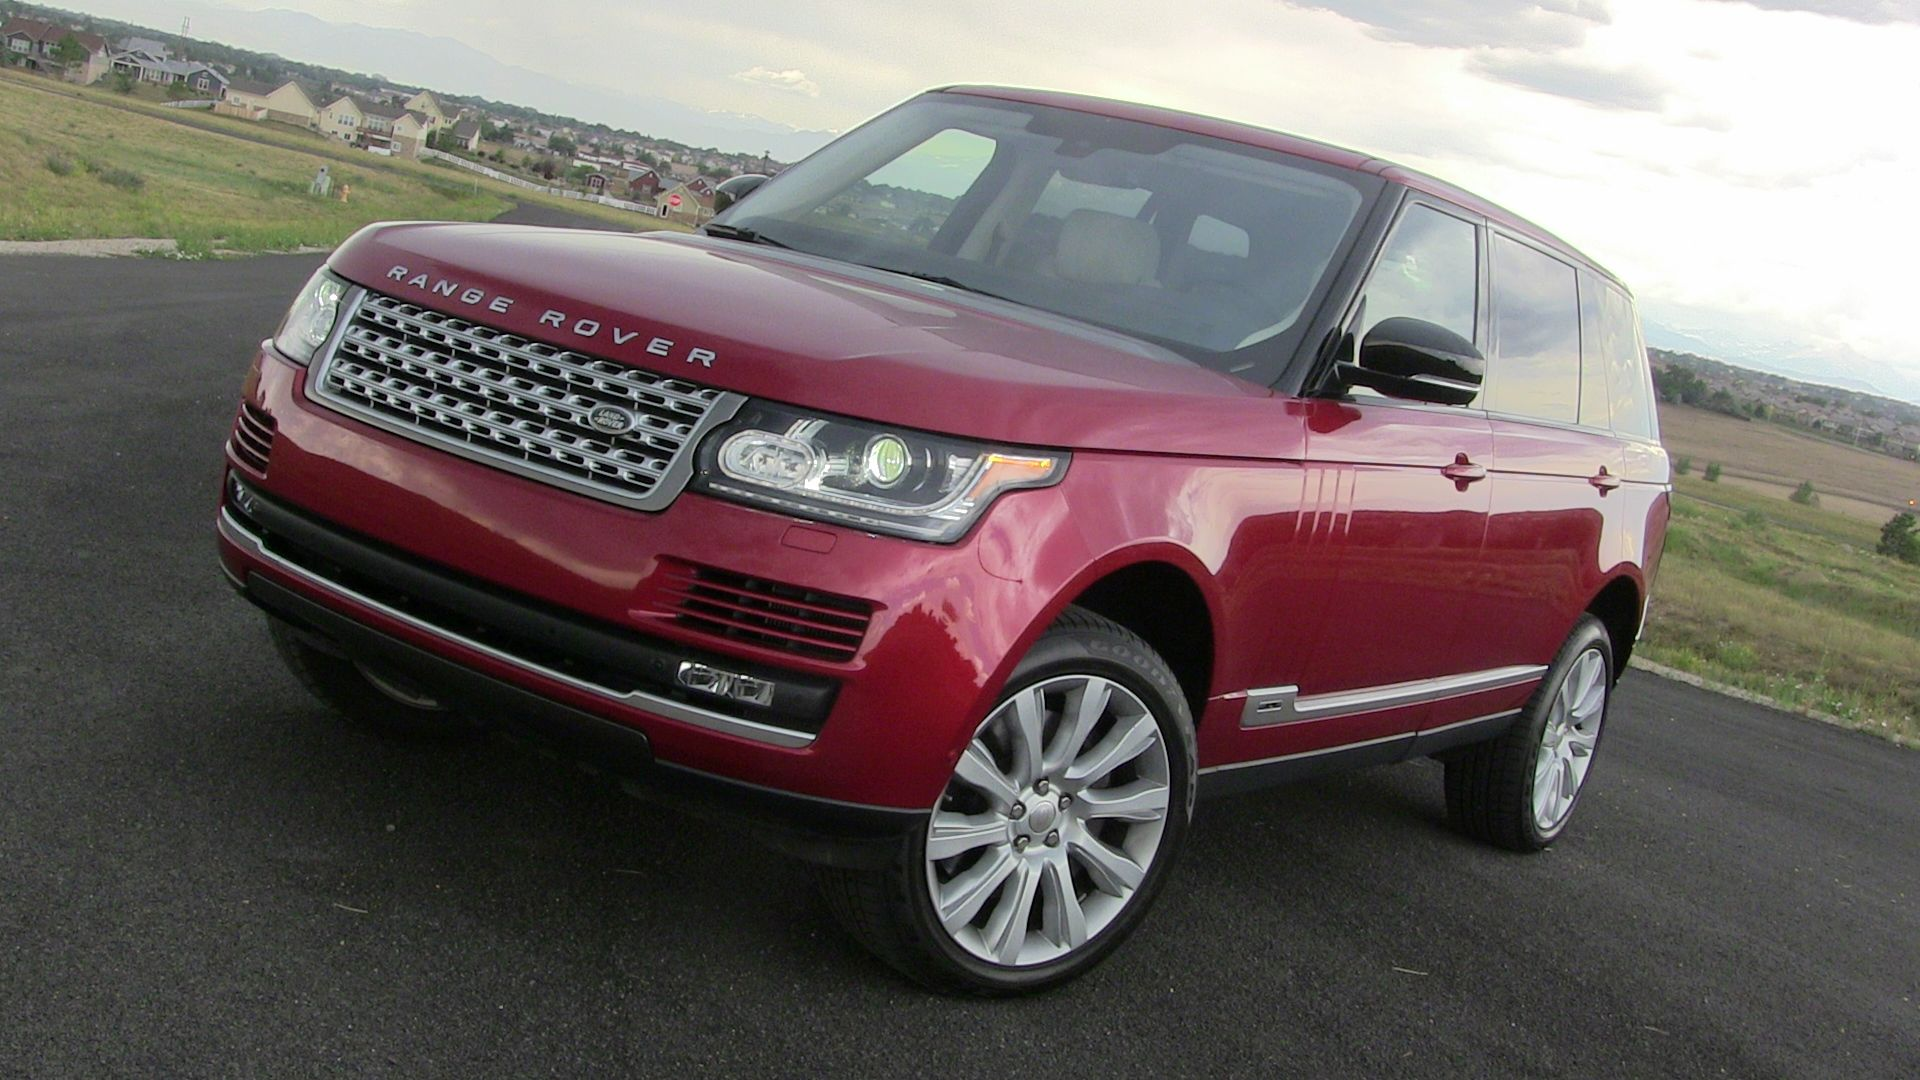 2014 Range Rover LWB Fit for the Queen [Review] The Fast Lane Car